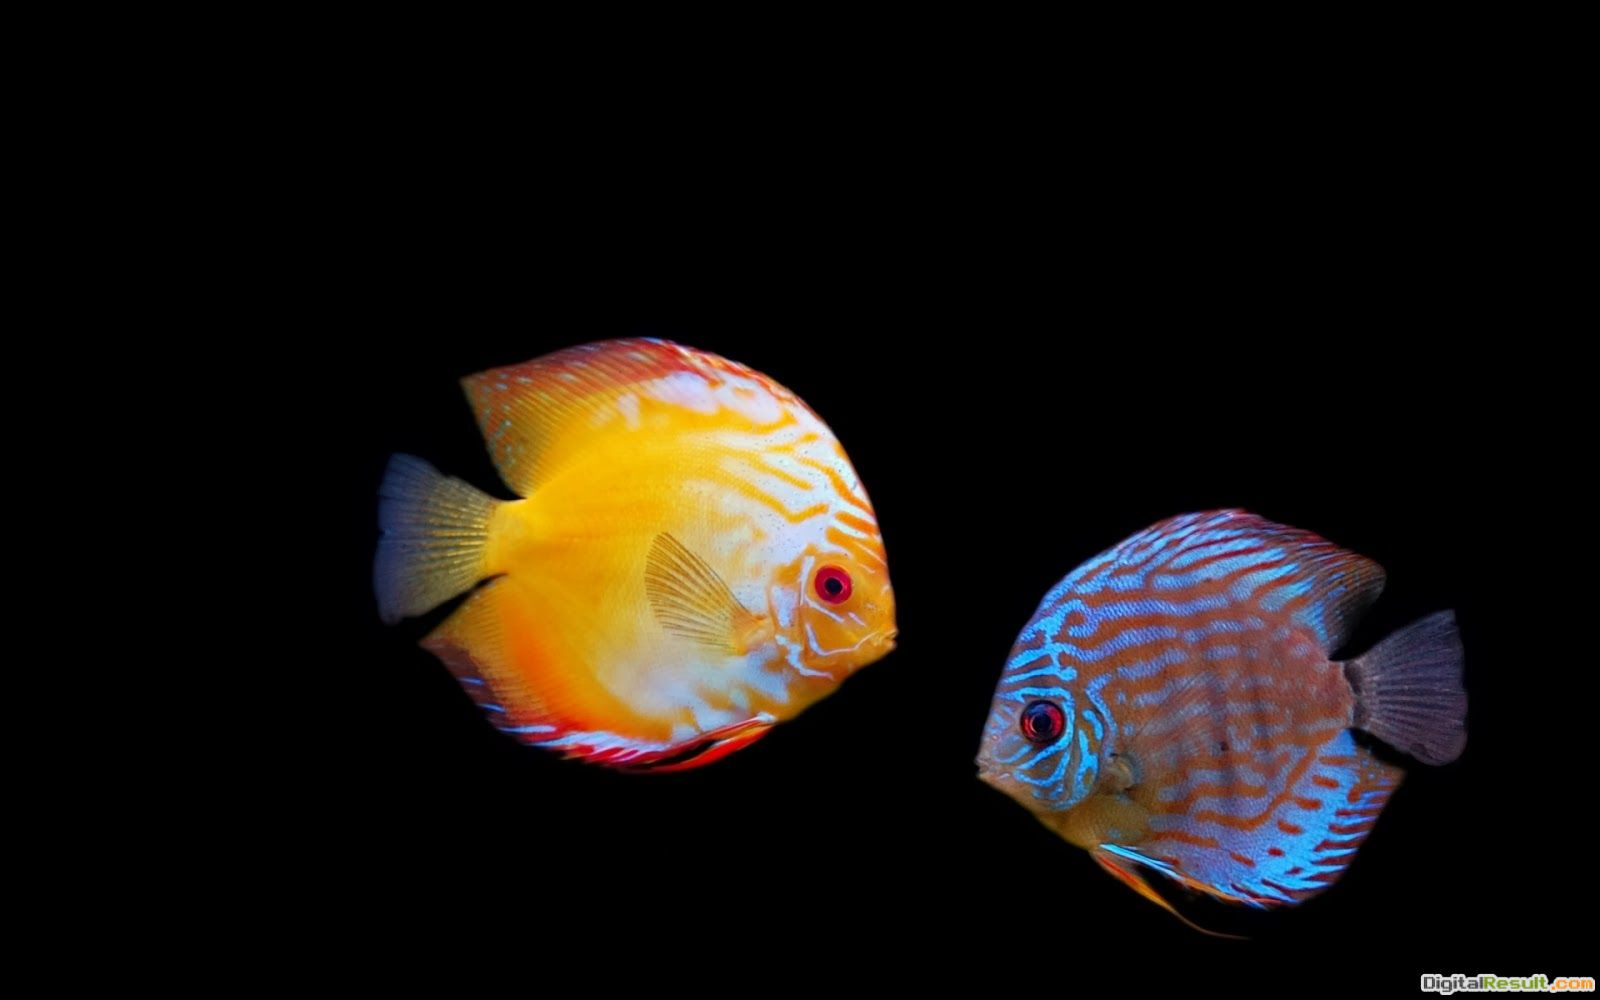 Red and green colour fish hd wallpaper picture 1919